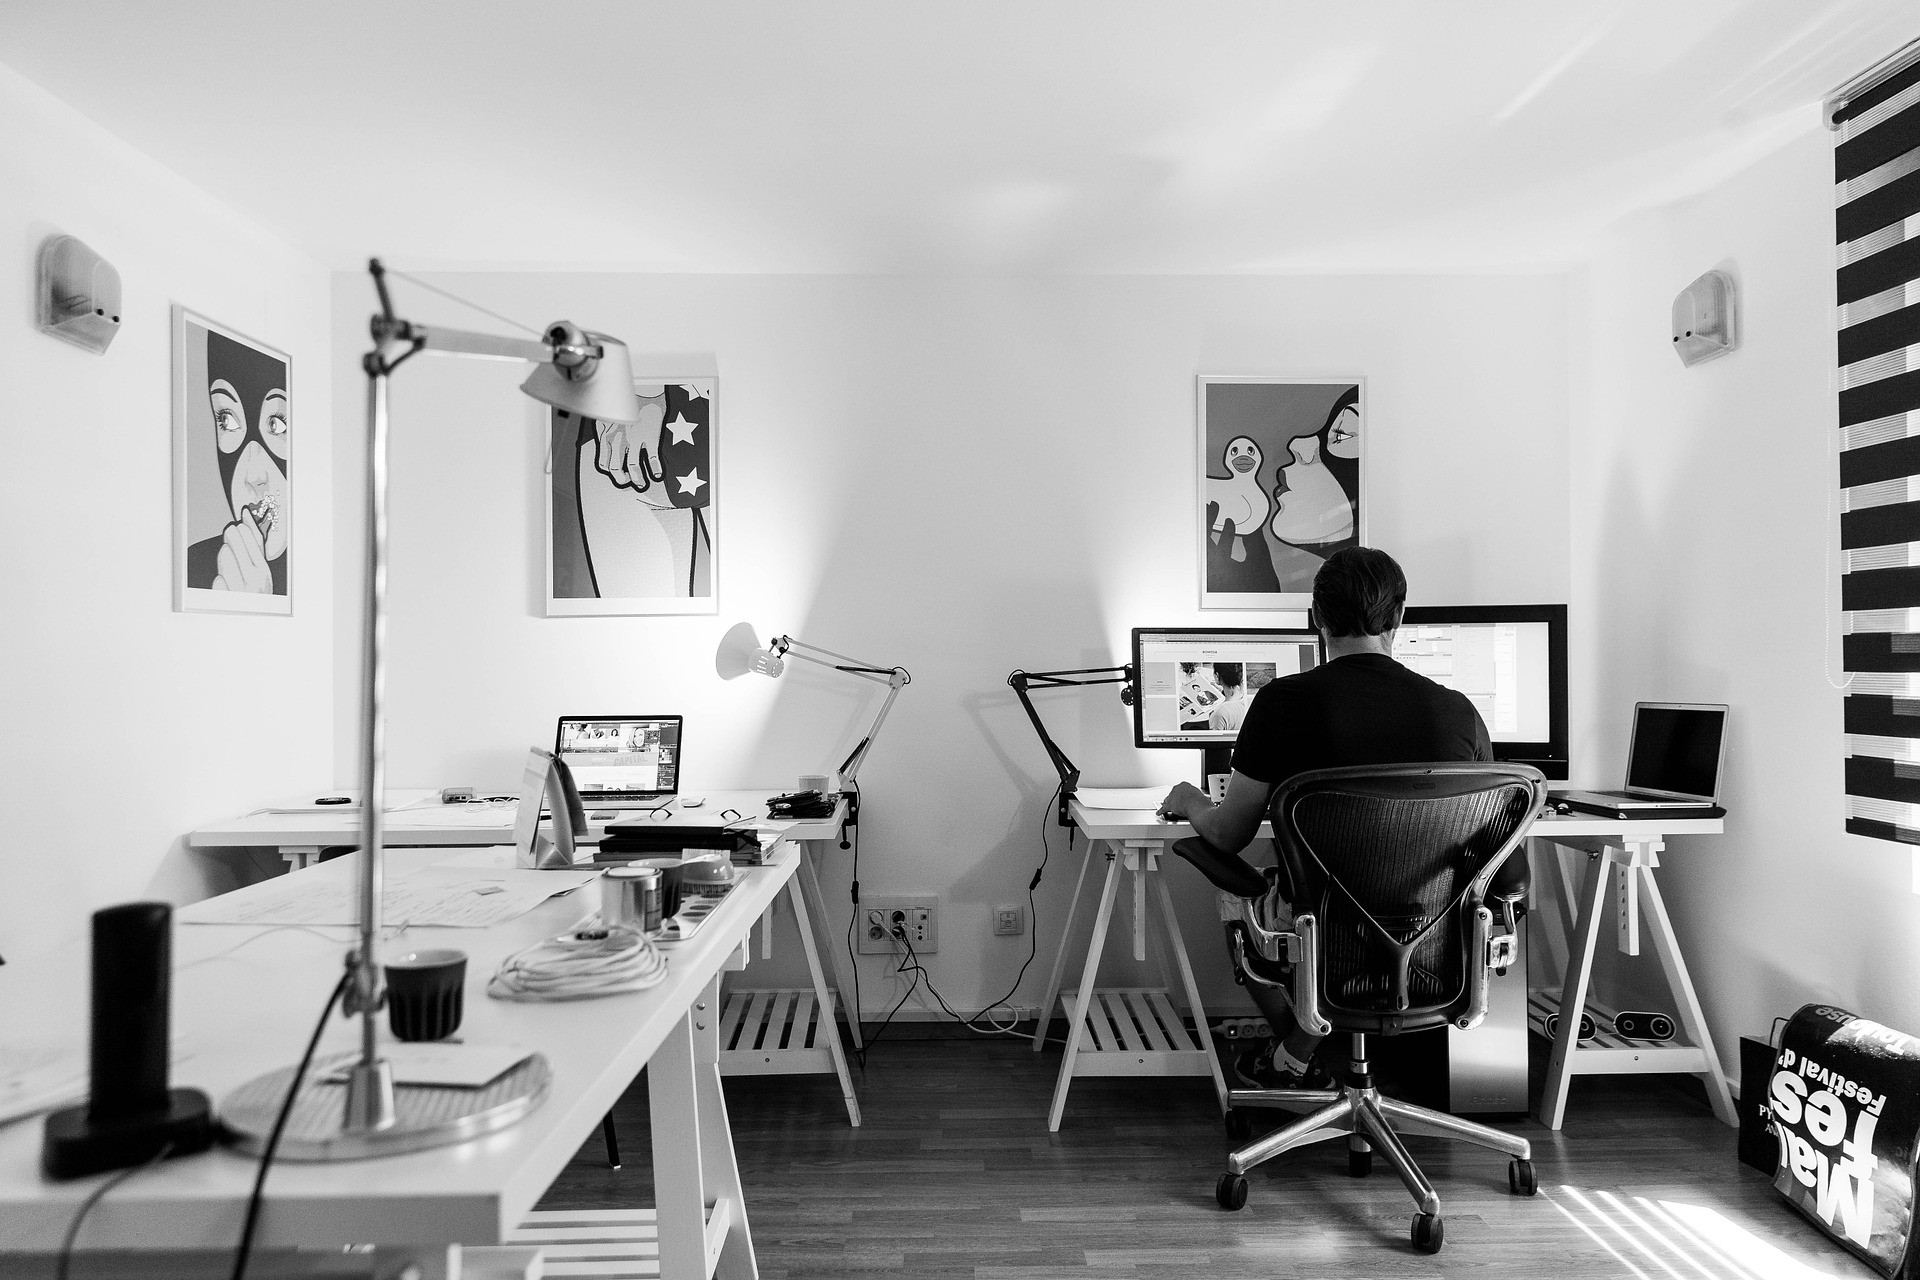 Home office organization has never been more critical than it is today. Use these tips to eliminate distractions and increase productivity.